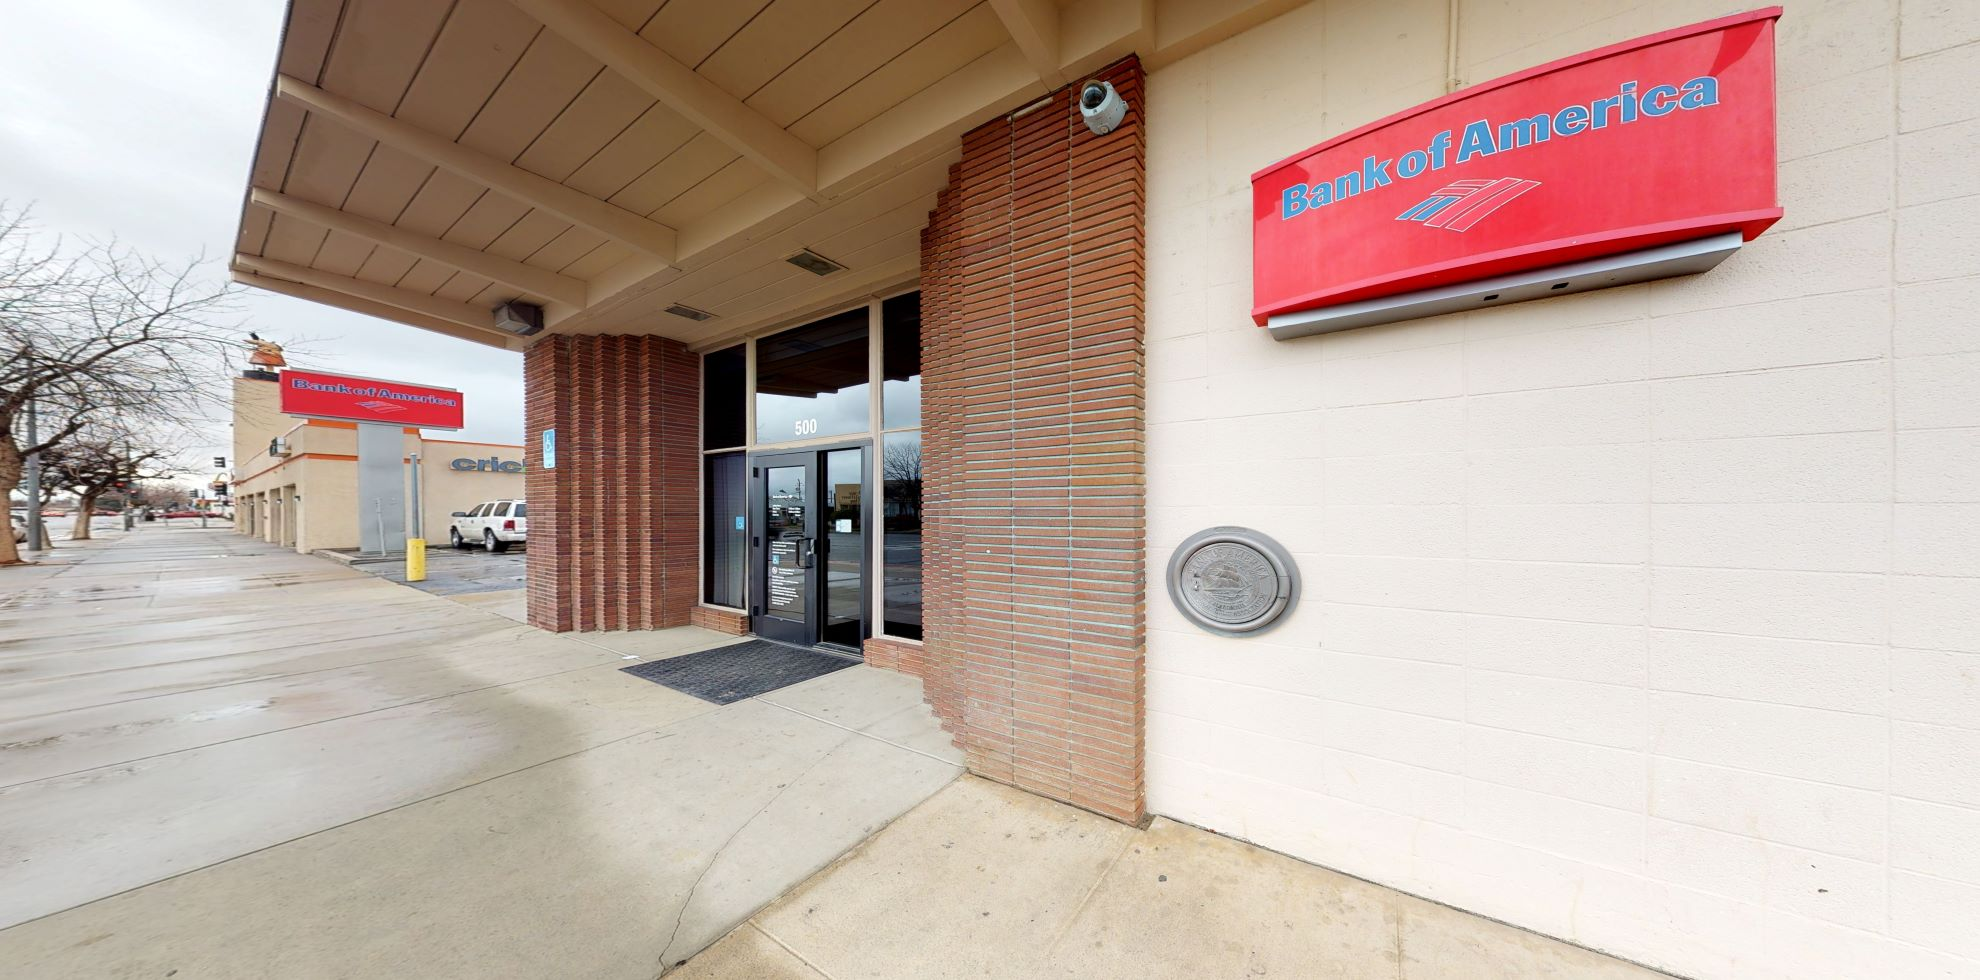 Bank of America financial center with walk-up ATM   500 Bear Mountain Blvd, Arvin, CA 93203